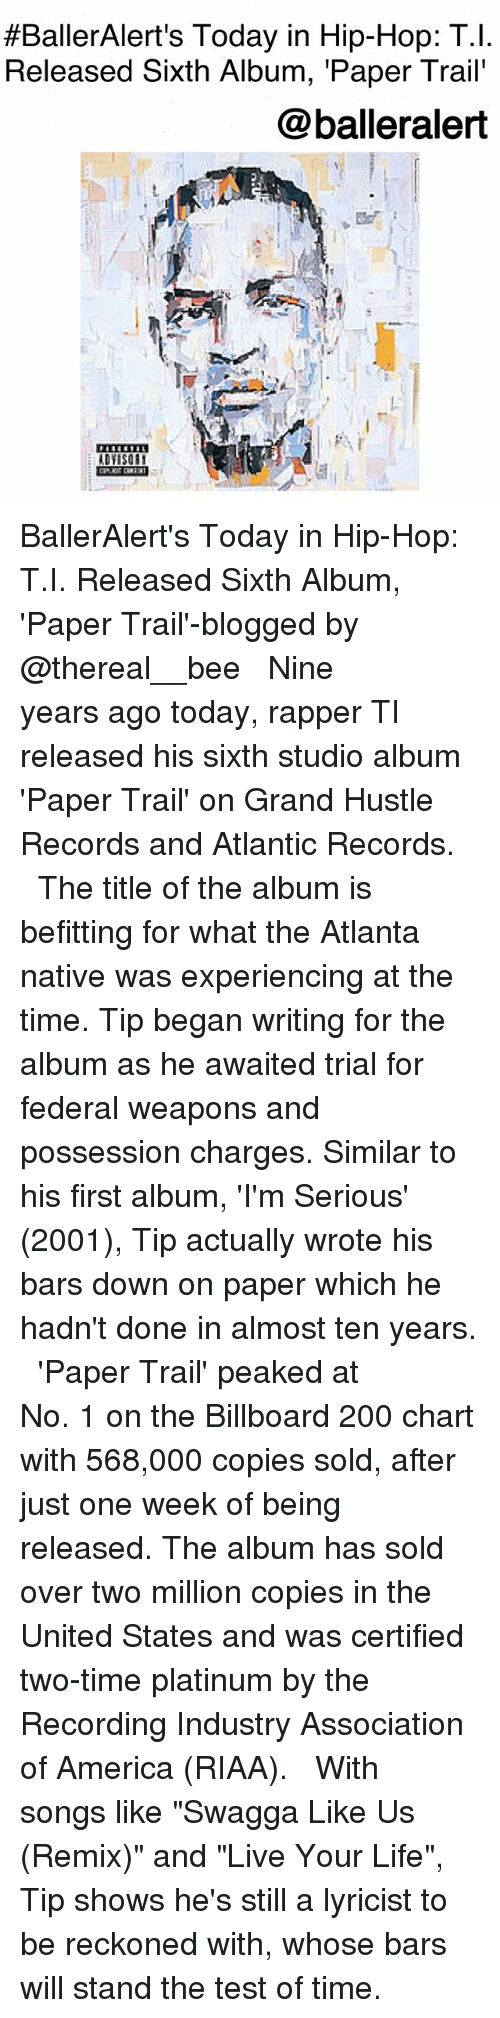 """America, Bailey Jay, and Billboard:  #BallerAlert's Today in Hip-Hop: T.!  Released Sixth Album, 'Paper Trail'  @balleralert  ADYISOE BallerAlert's Today in Hip-Hop: T.I. Released Sixth Album, 'Paper Trail'-blogged by @thereal__bee ⠀⠀⠀⠀⠀⠀⠀⠀⠀ ⠀⠀ Nine years ago today, rapper TI released his sixth studio album 'Paper Trail' on Grand Hustle Records and Atlantic Records. ⠀⠀⠀⠀⠀⠀⠀⠀⠀ ⠀⠀ The title of the album is befitting for what the Atlanta native was experiencing at the time. Tip began writing for the album as he awaited trial for federal weapons and possession charges. Similar to his first album, 'I'm Serious' (2001), Tip actually wrote his bars down on paper which he hadn't done in almost ten years. ⠀⠀⠀⠀⠀⠀⠀⠀⠀ ⠀⠀ 'Paper Trail' peaked at No. 1 on the Billboard 200 chart with 568,000 copies sold, after just one week of being released. The album has sold over two million copies in the United States and was certified two-time platinum by the Recording Industry Association of America (RIAA). ⠀⠀⠀⠀⠀⠀⠀⠀⠀ ⠀⠀ With songs like """"Swagga Like Us (Remix)"""" and """"Live Your Life"""", Tip shows he's still a lyricist to be reckoned with, whose bars will stand the test of time."""